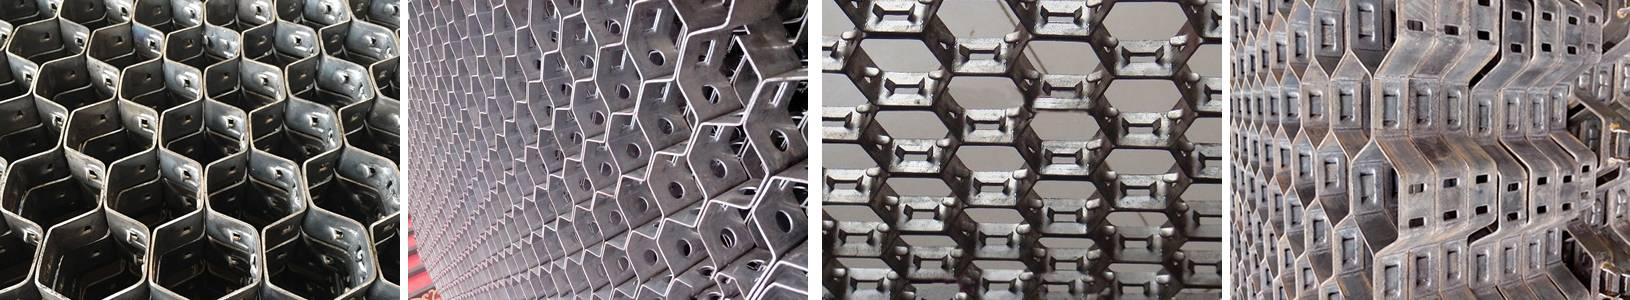 The picture shows hex steel products jigsaw.